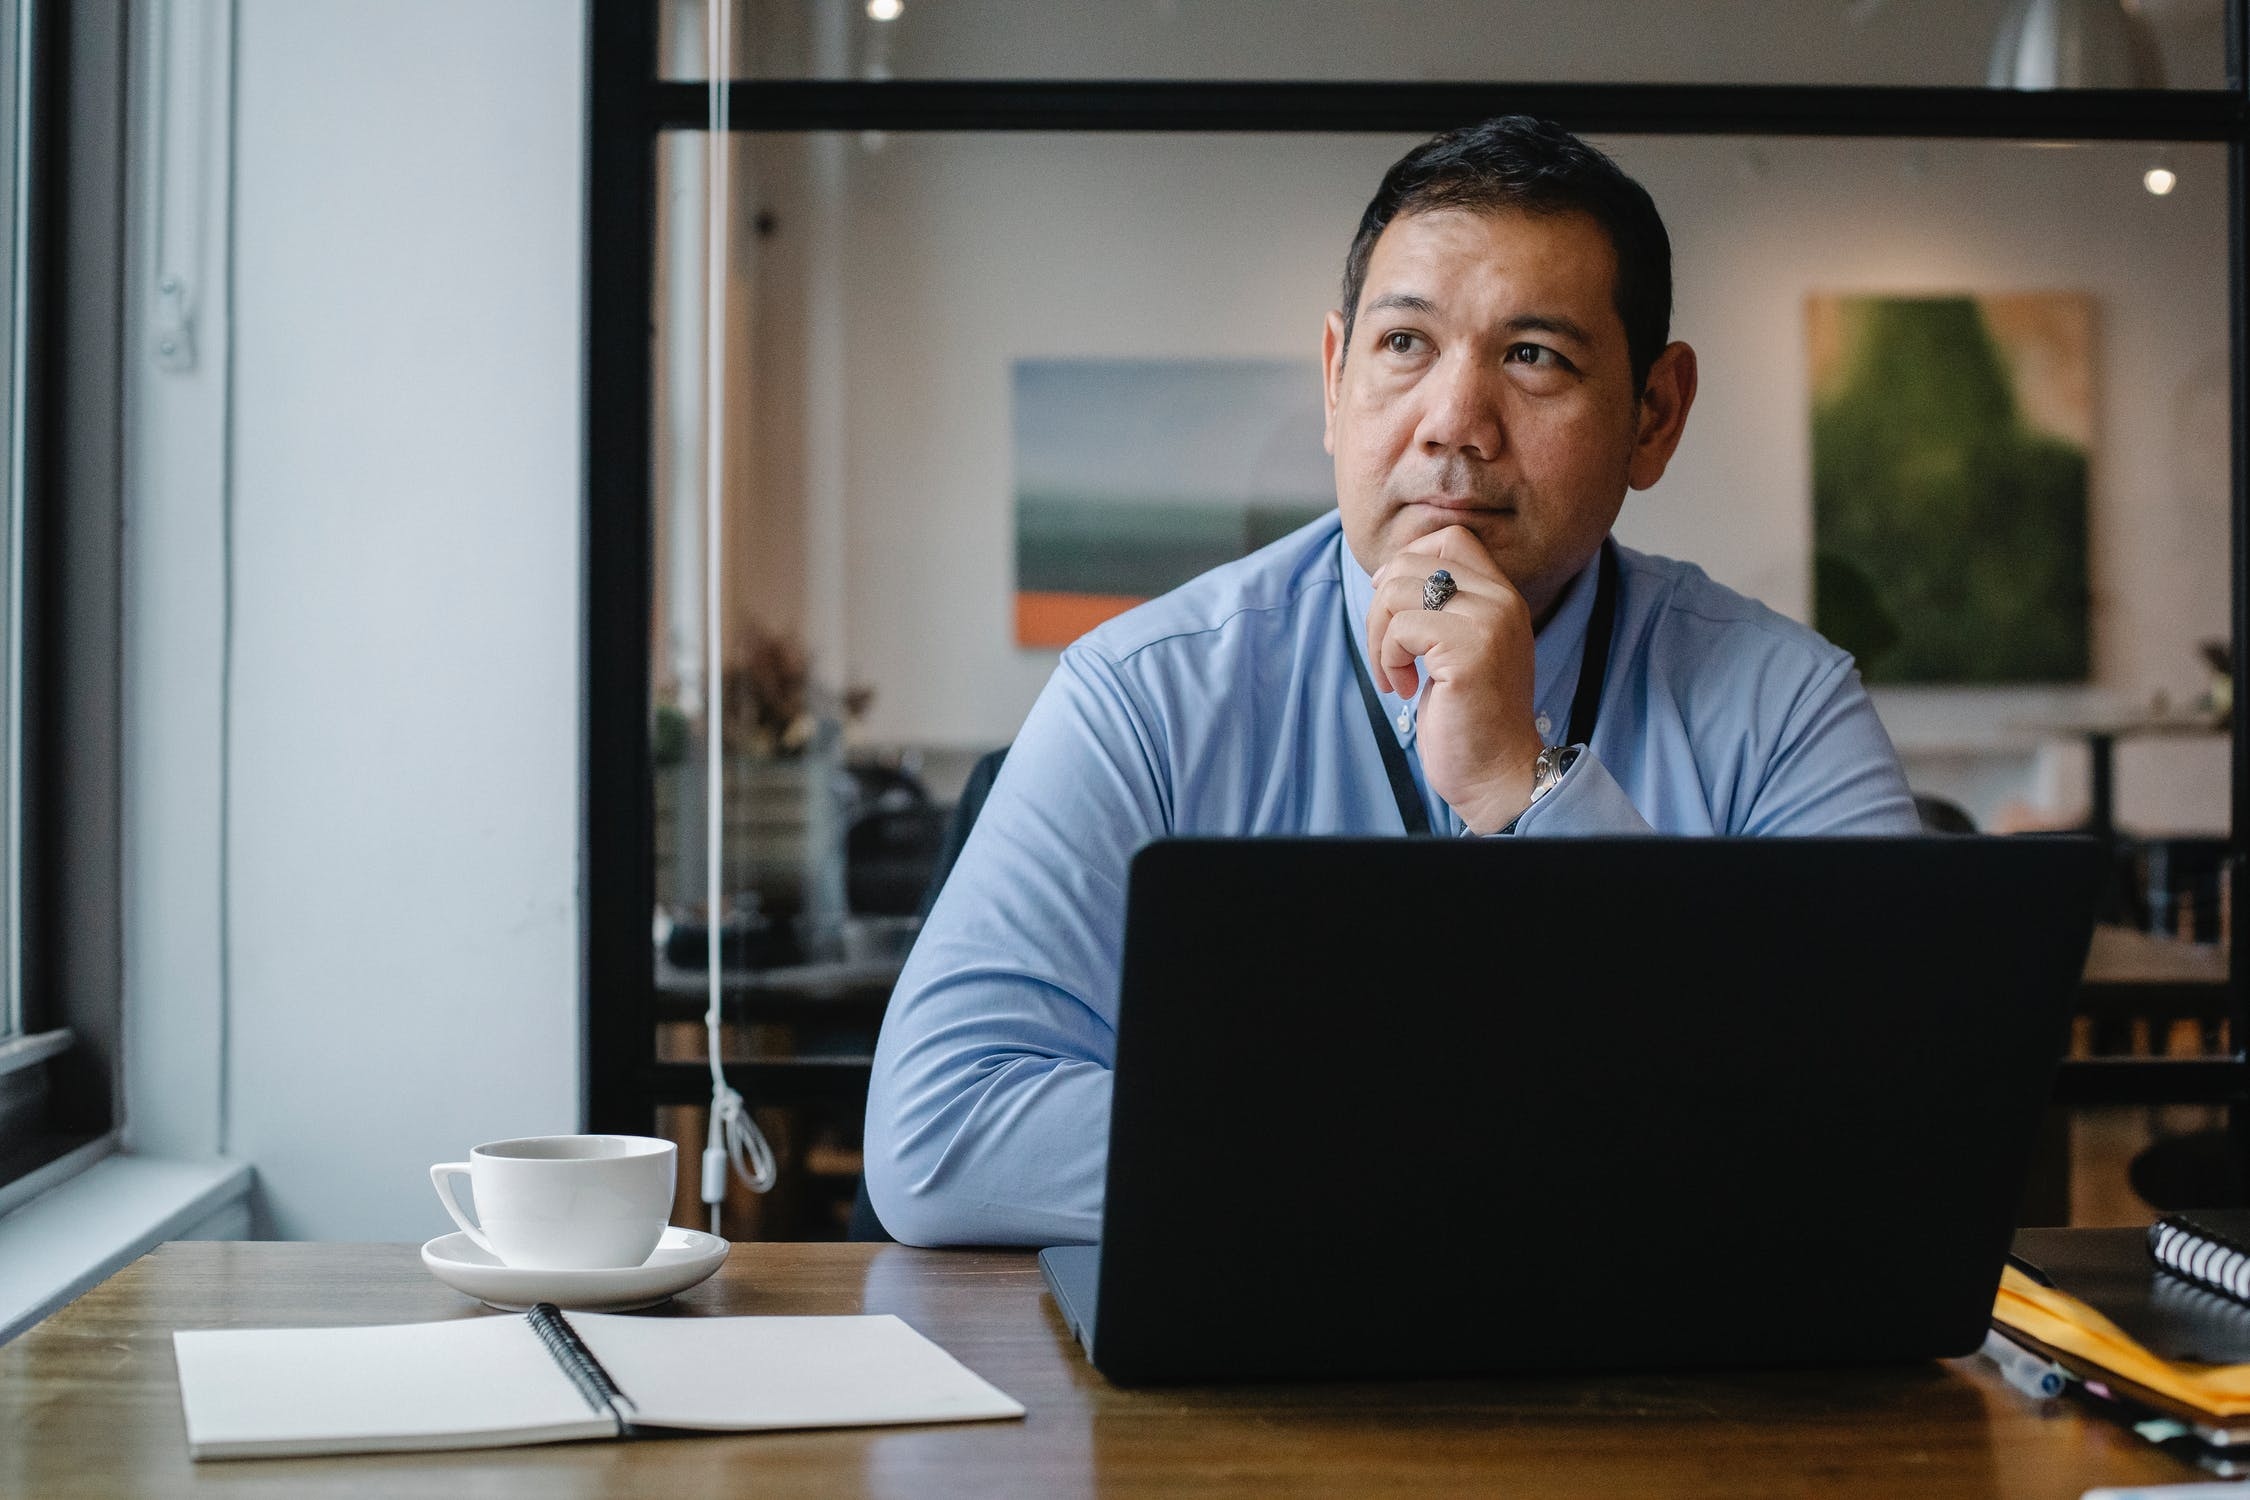 Lawyer working on laptop on integrated practice management software